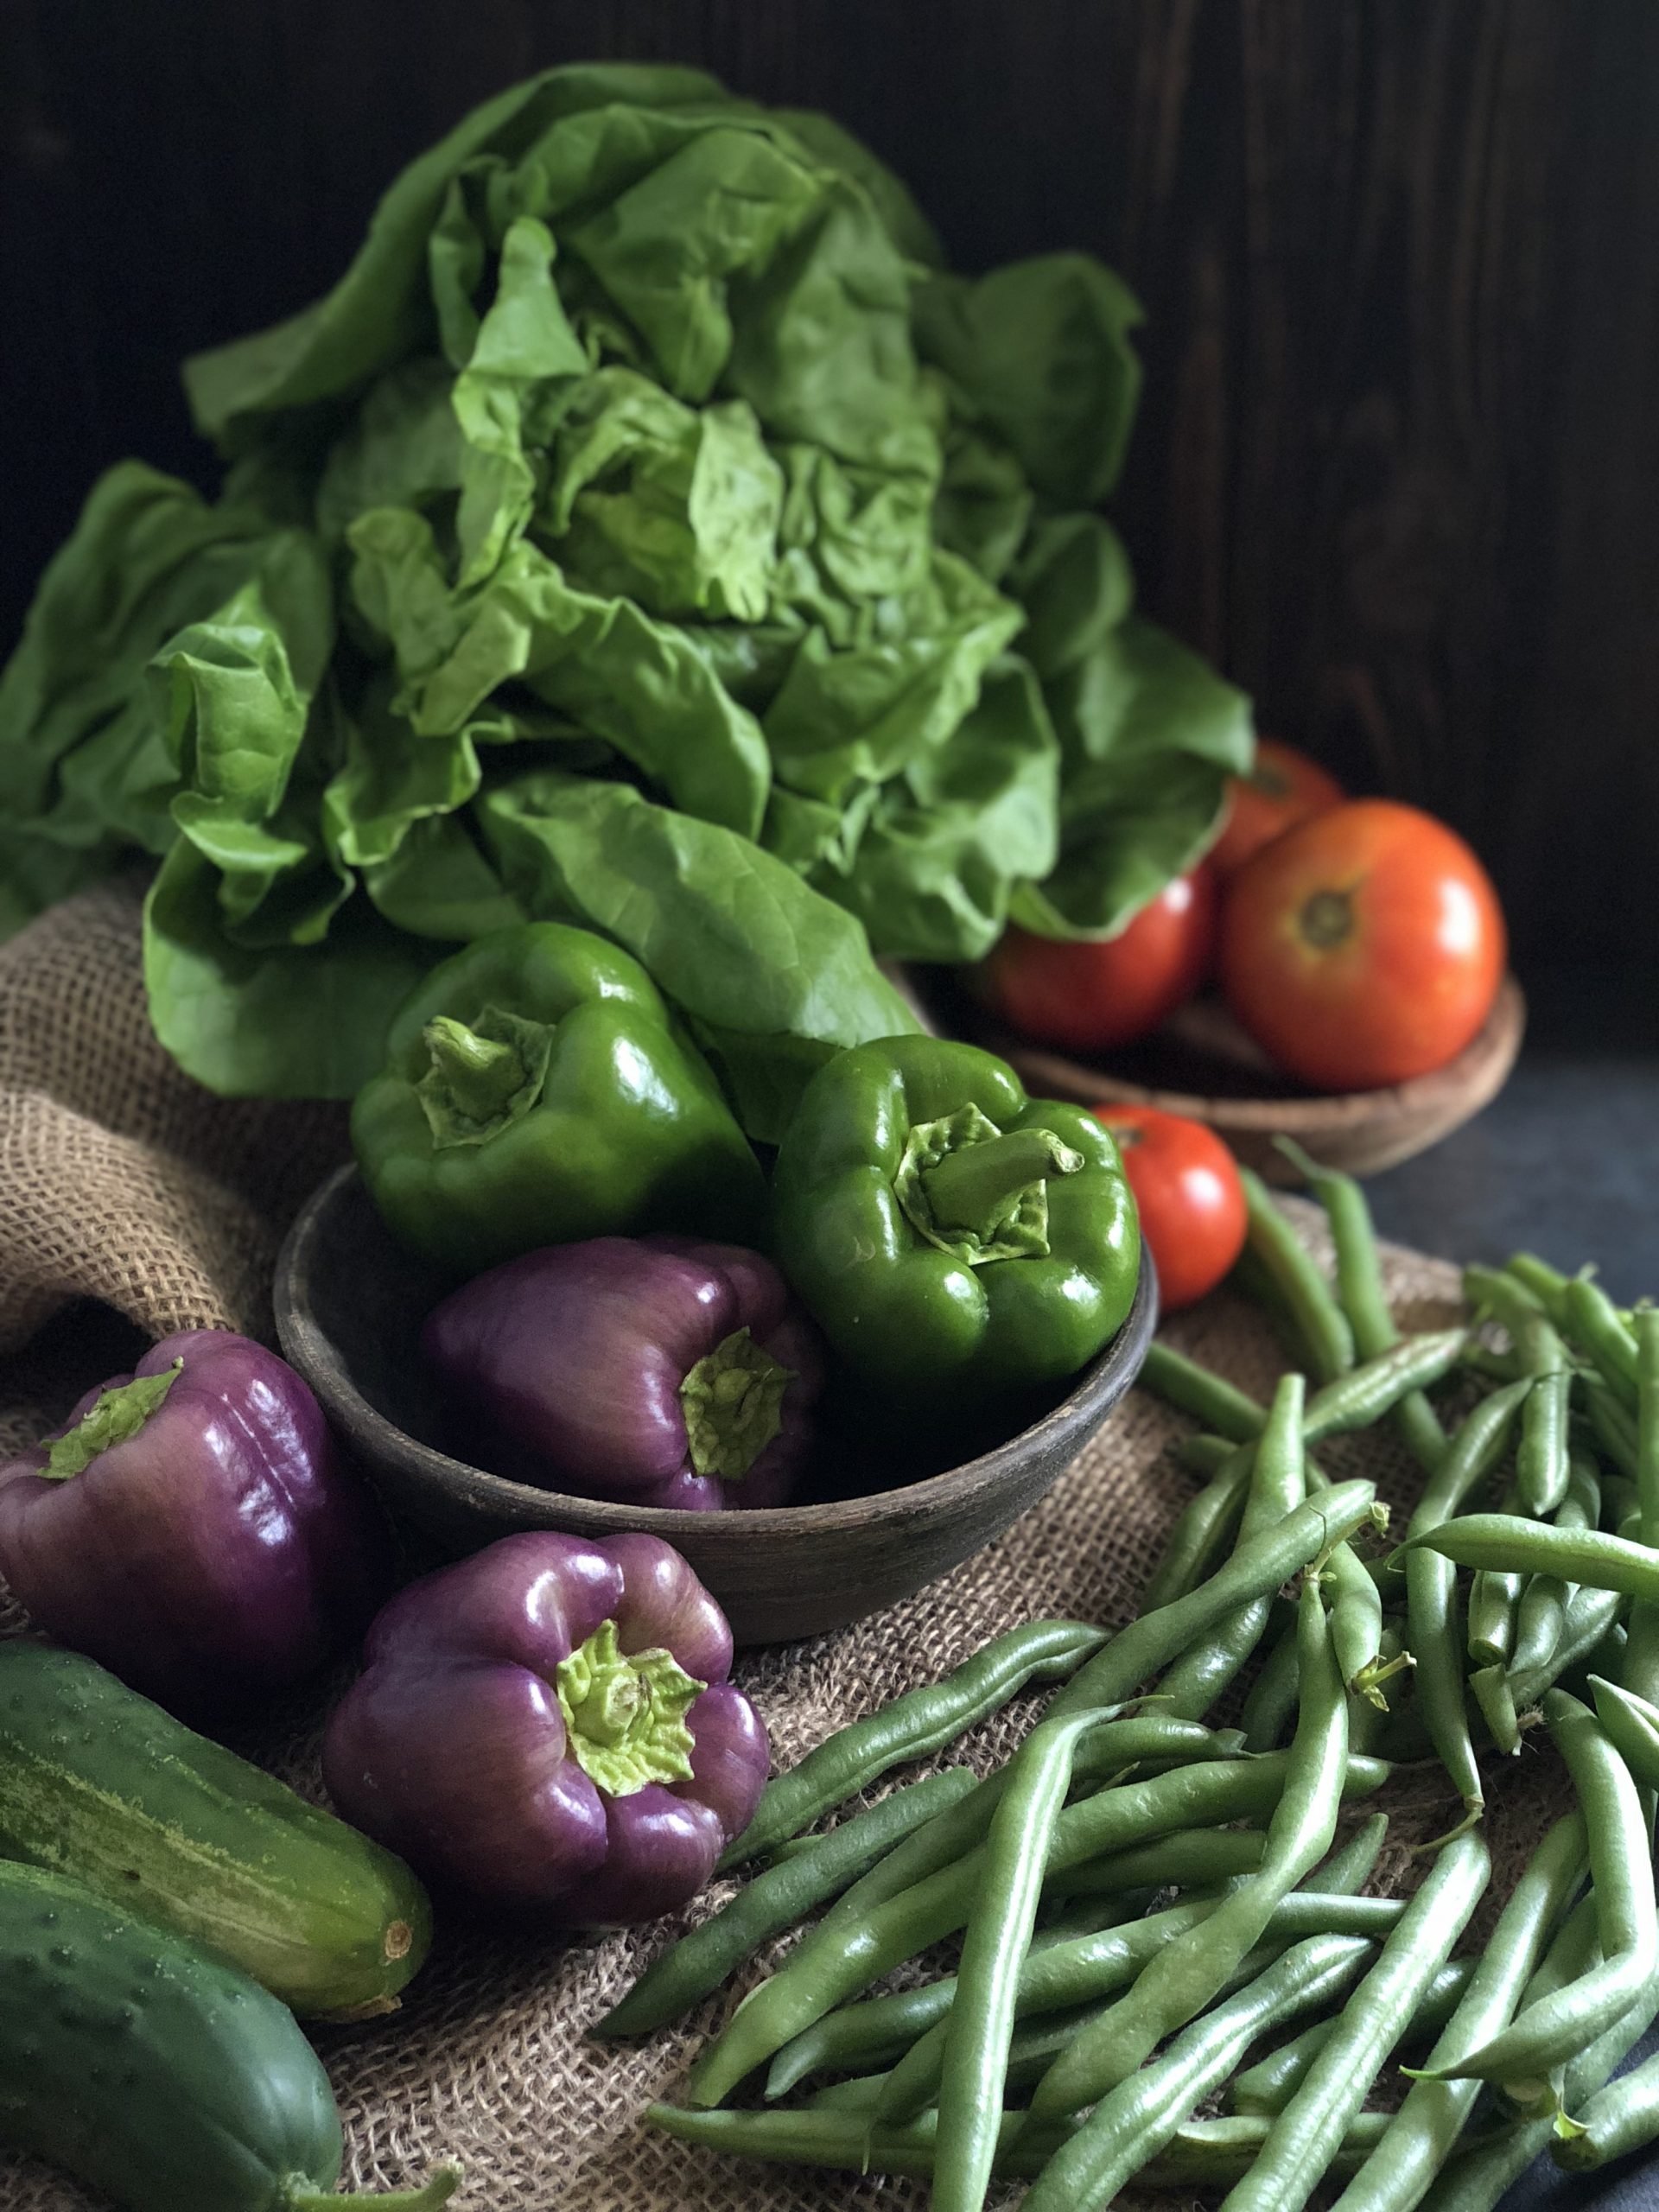 Eat a variety of Produce to stay on a low-carb diet.